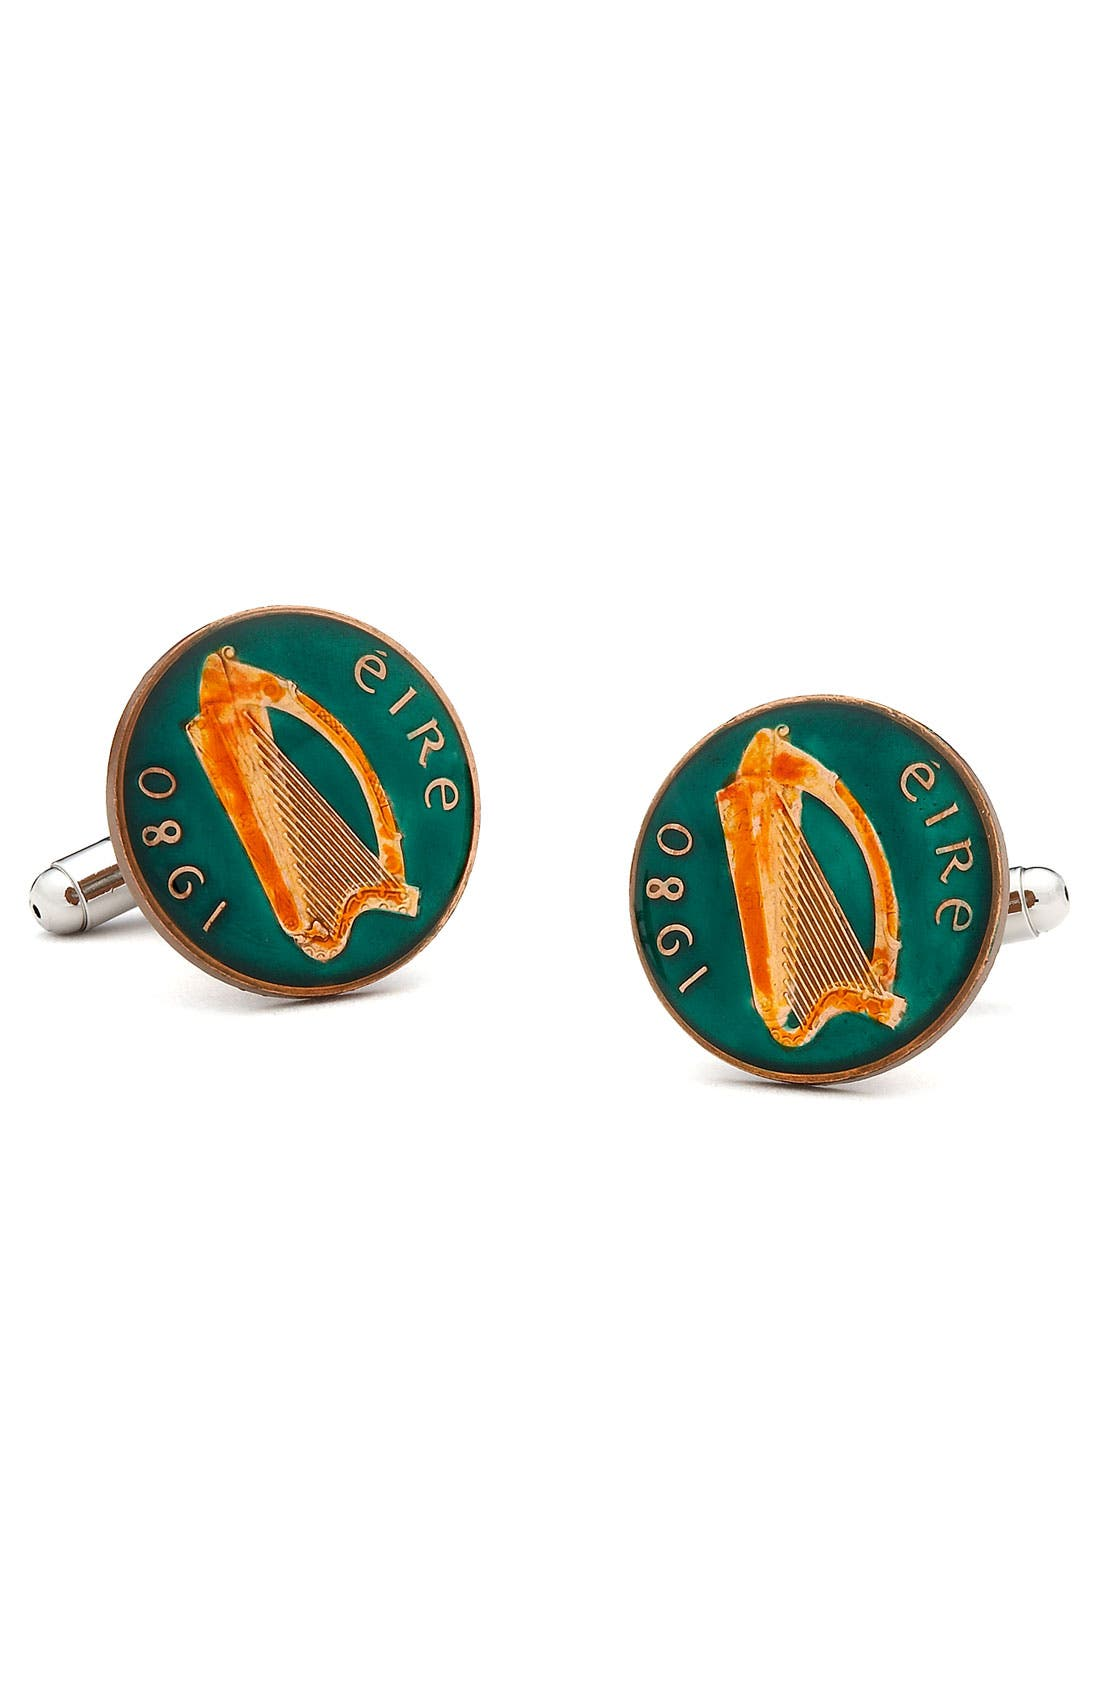 Main Image - Penny Black 40 Irish Eire Cuff Links